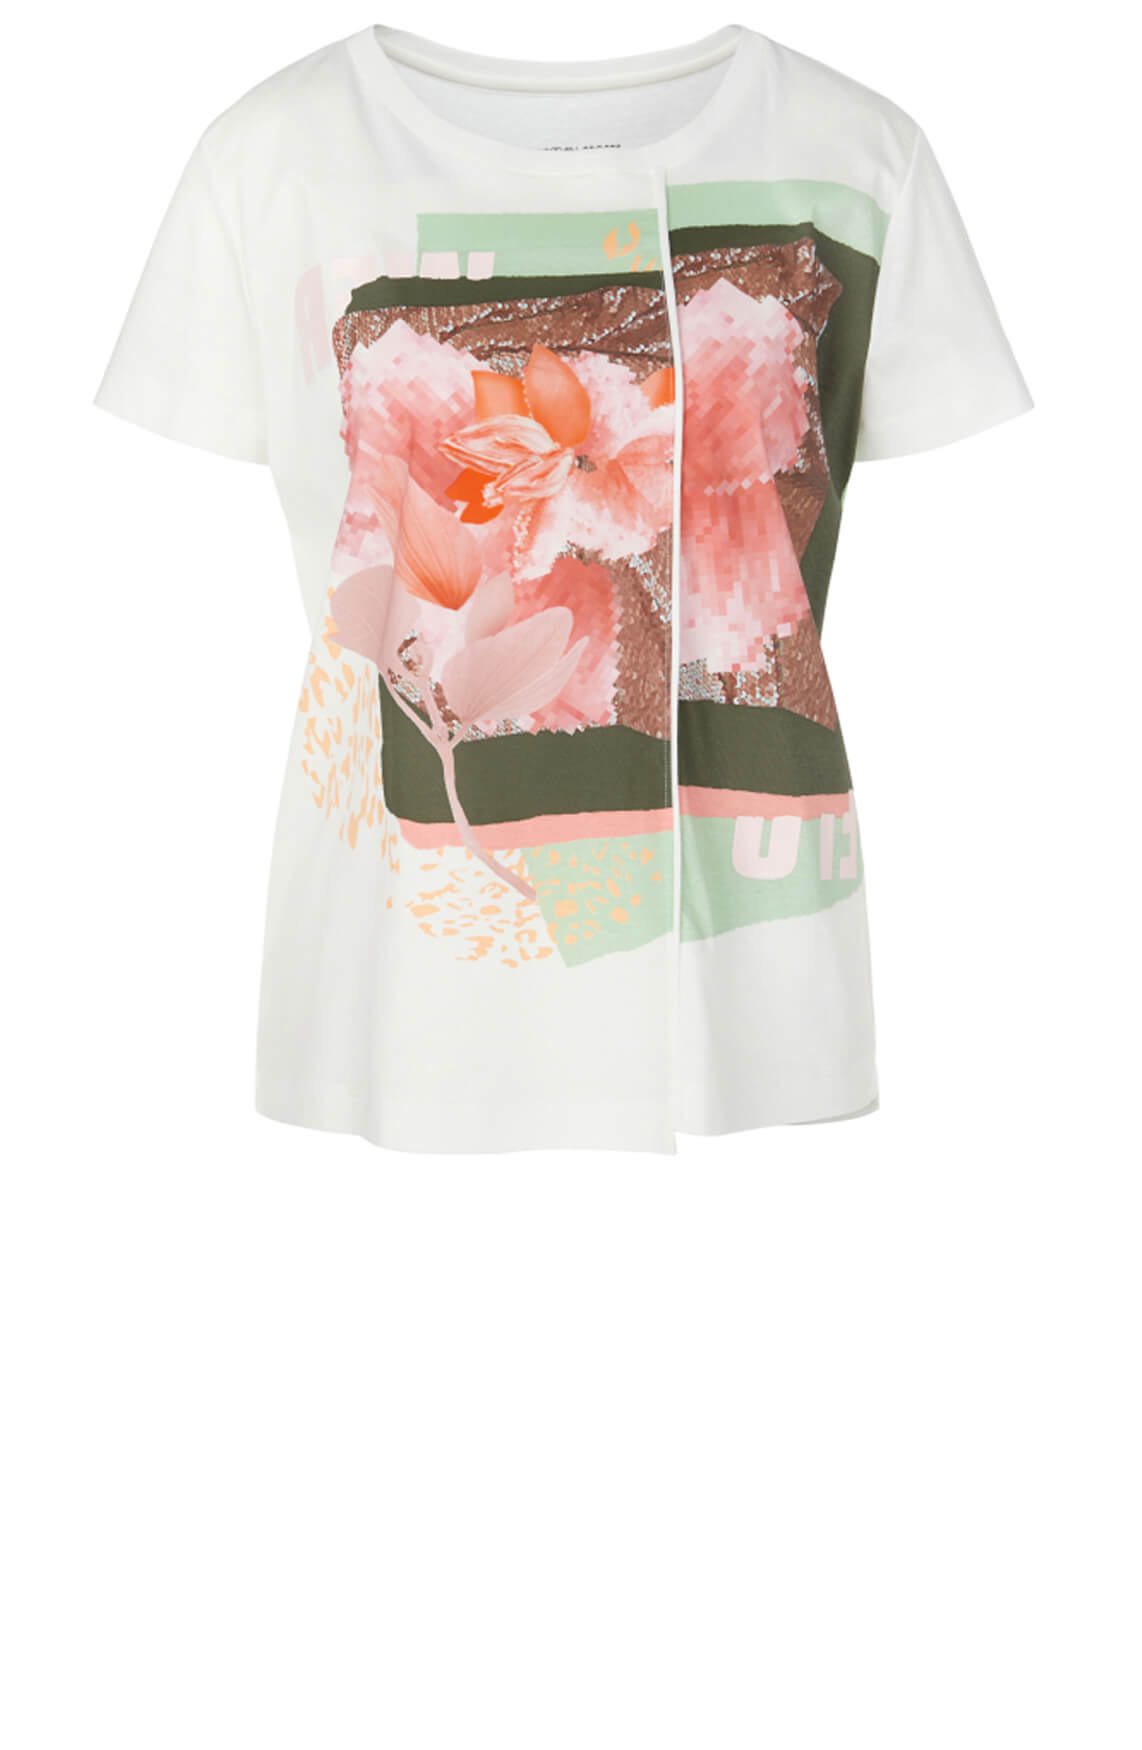 Marccain Sports Dames Shirt met print Wit